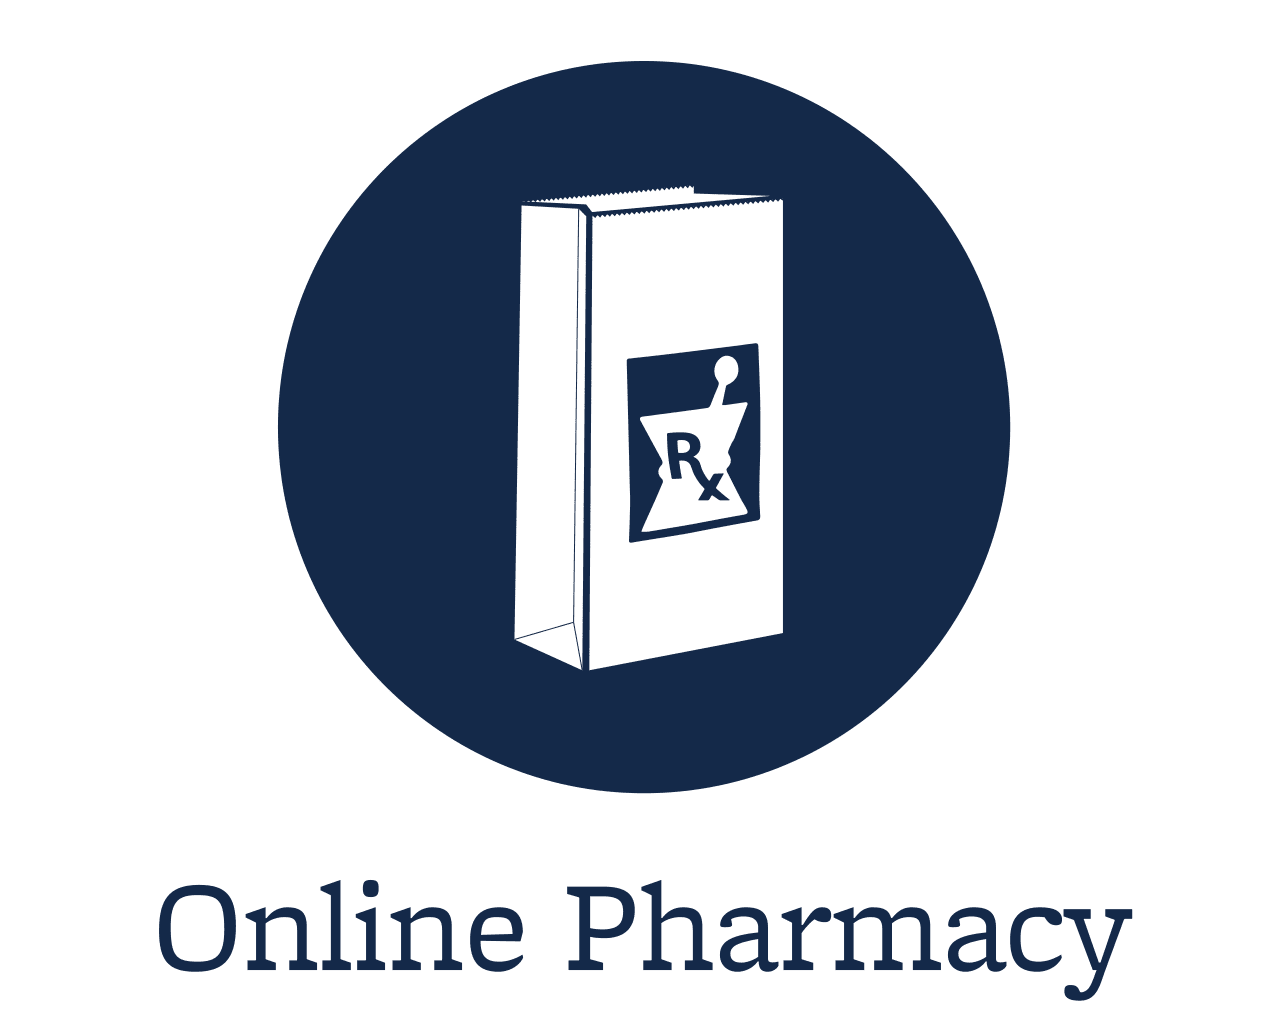 Our online animal hospital pharmacy in San Diego